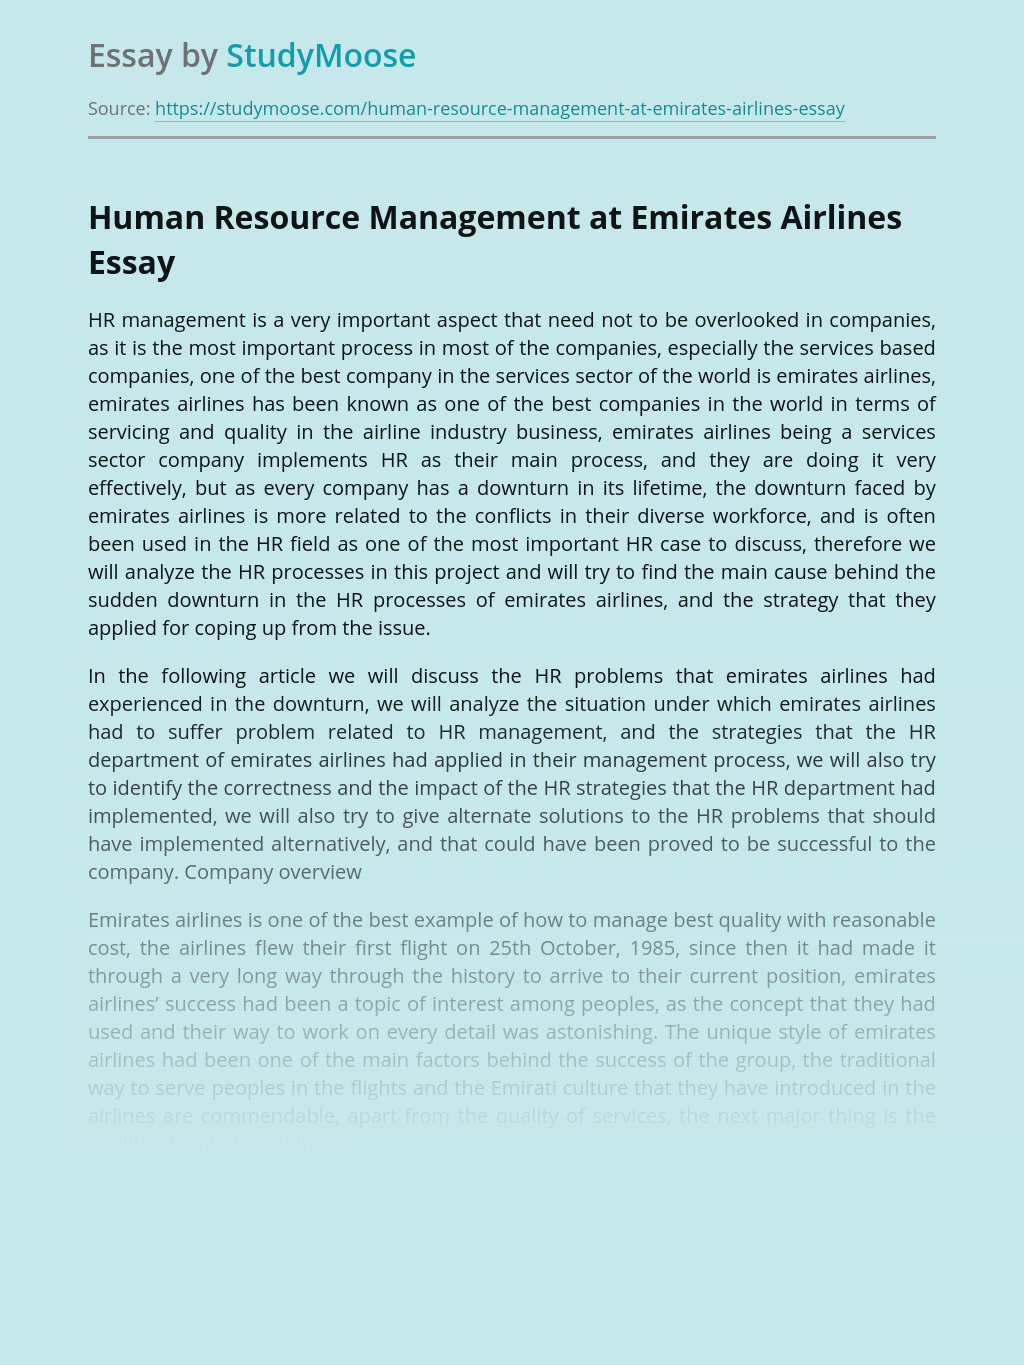 Human Resource Management at Emirates Airlines